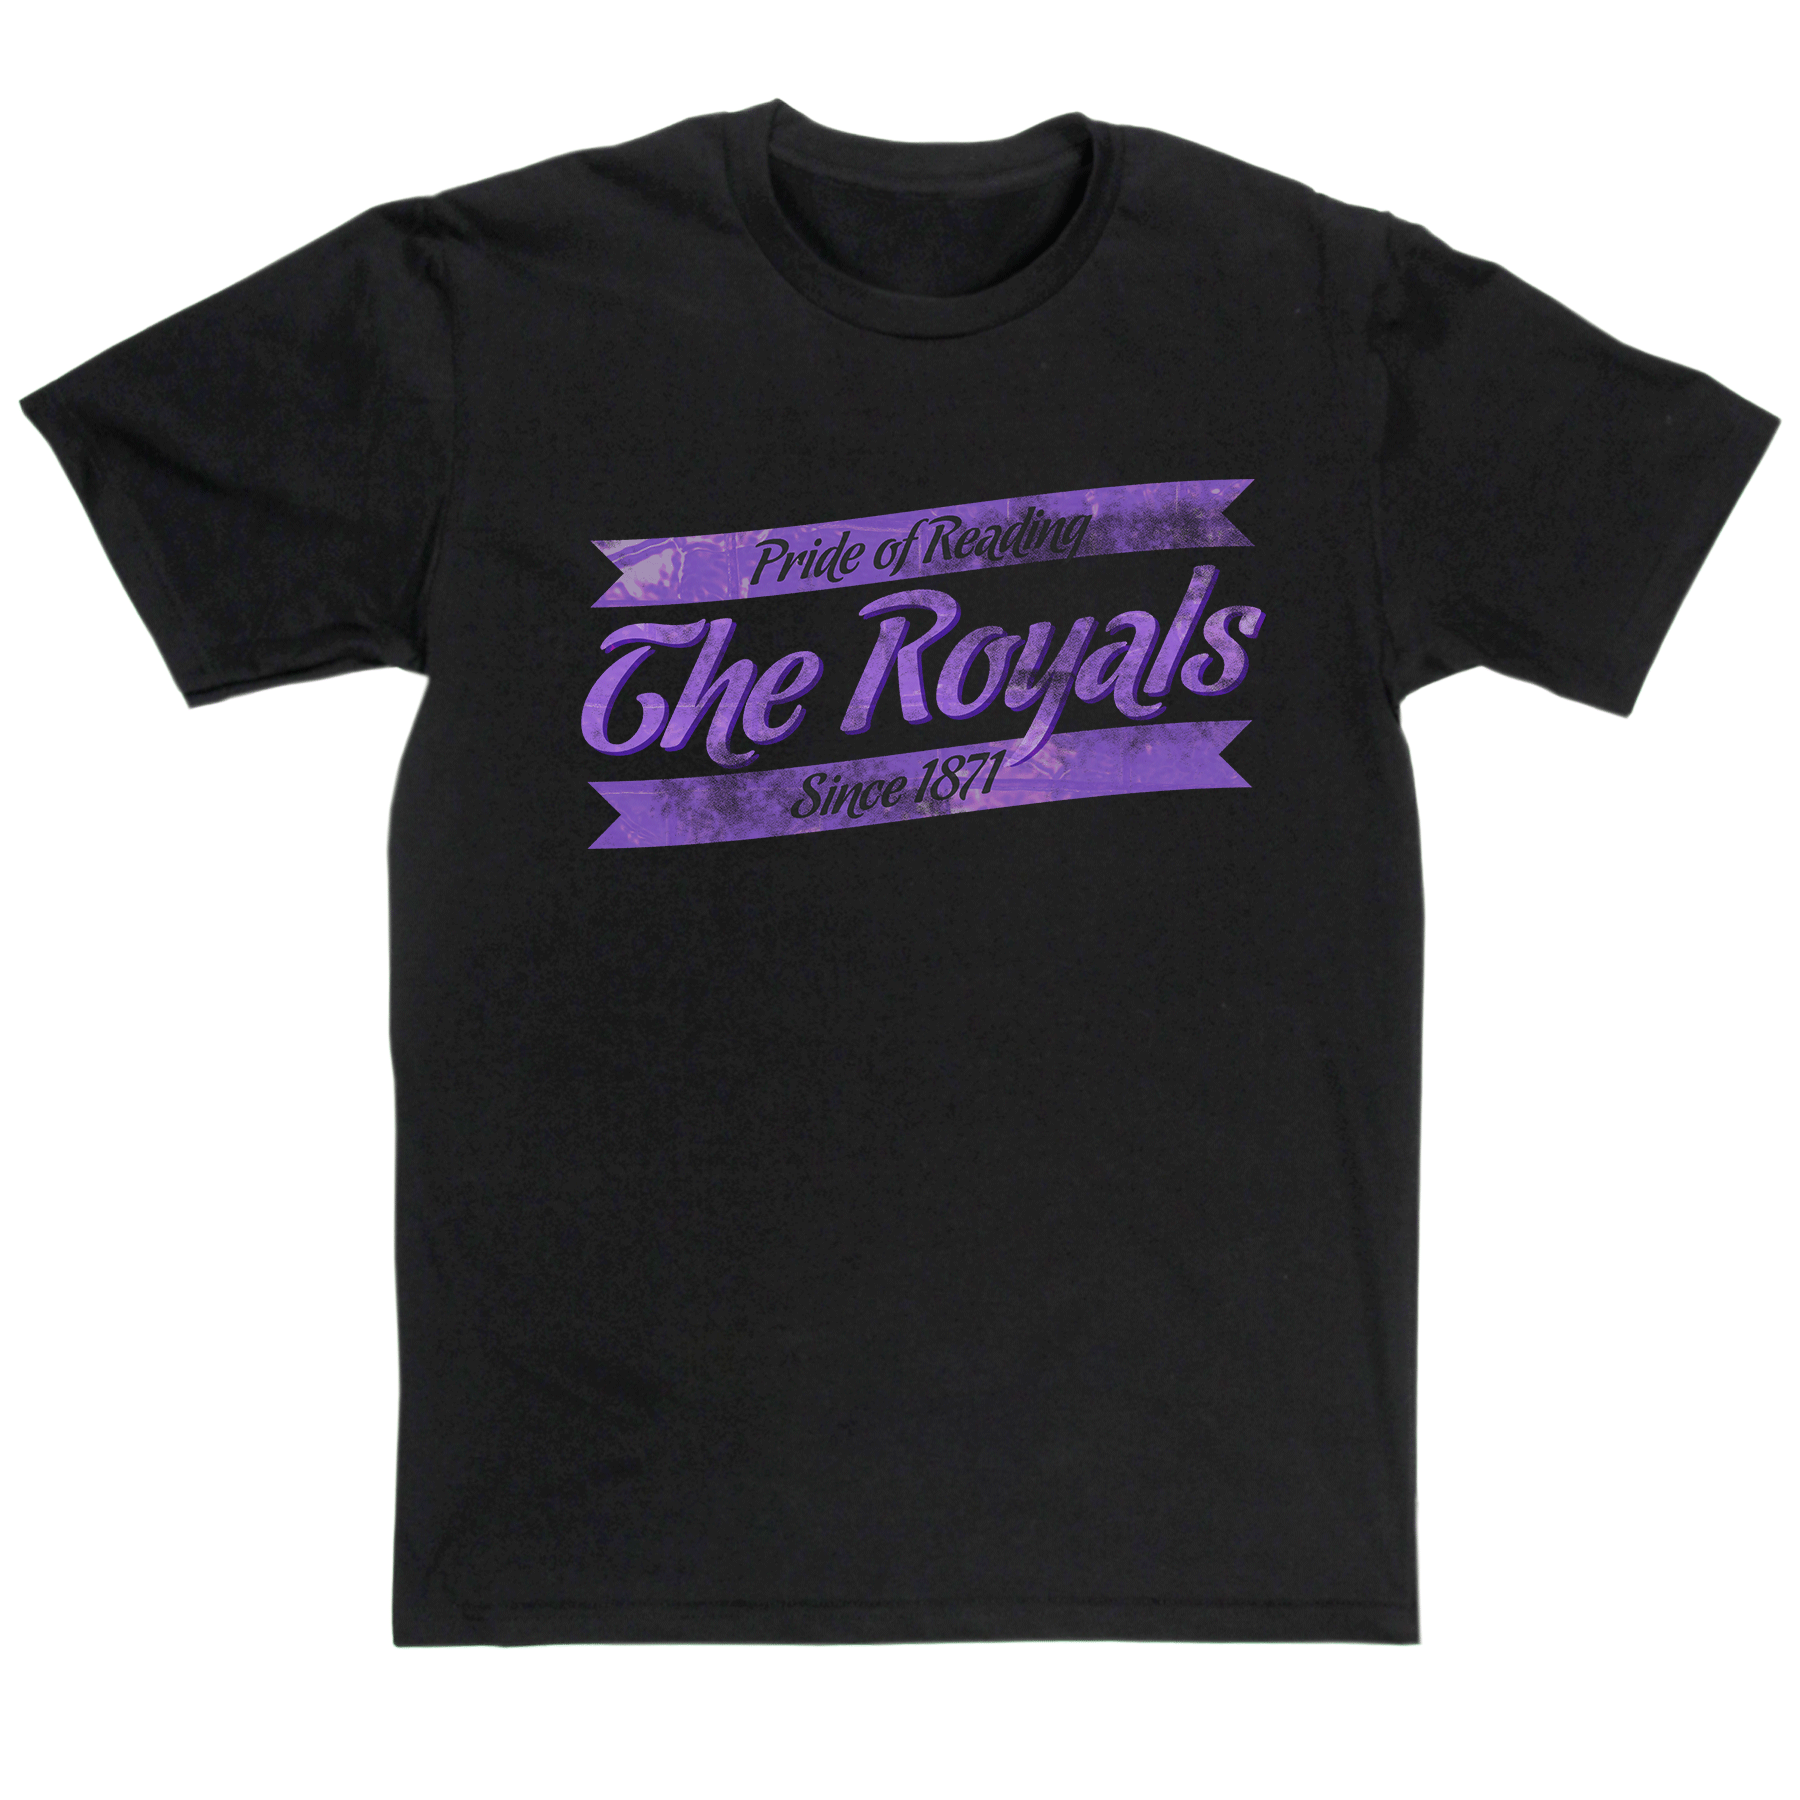 Club Nicknames The Royals T-Shirt